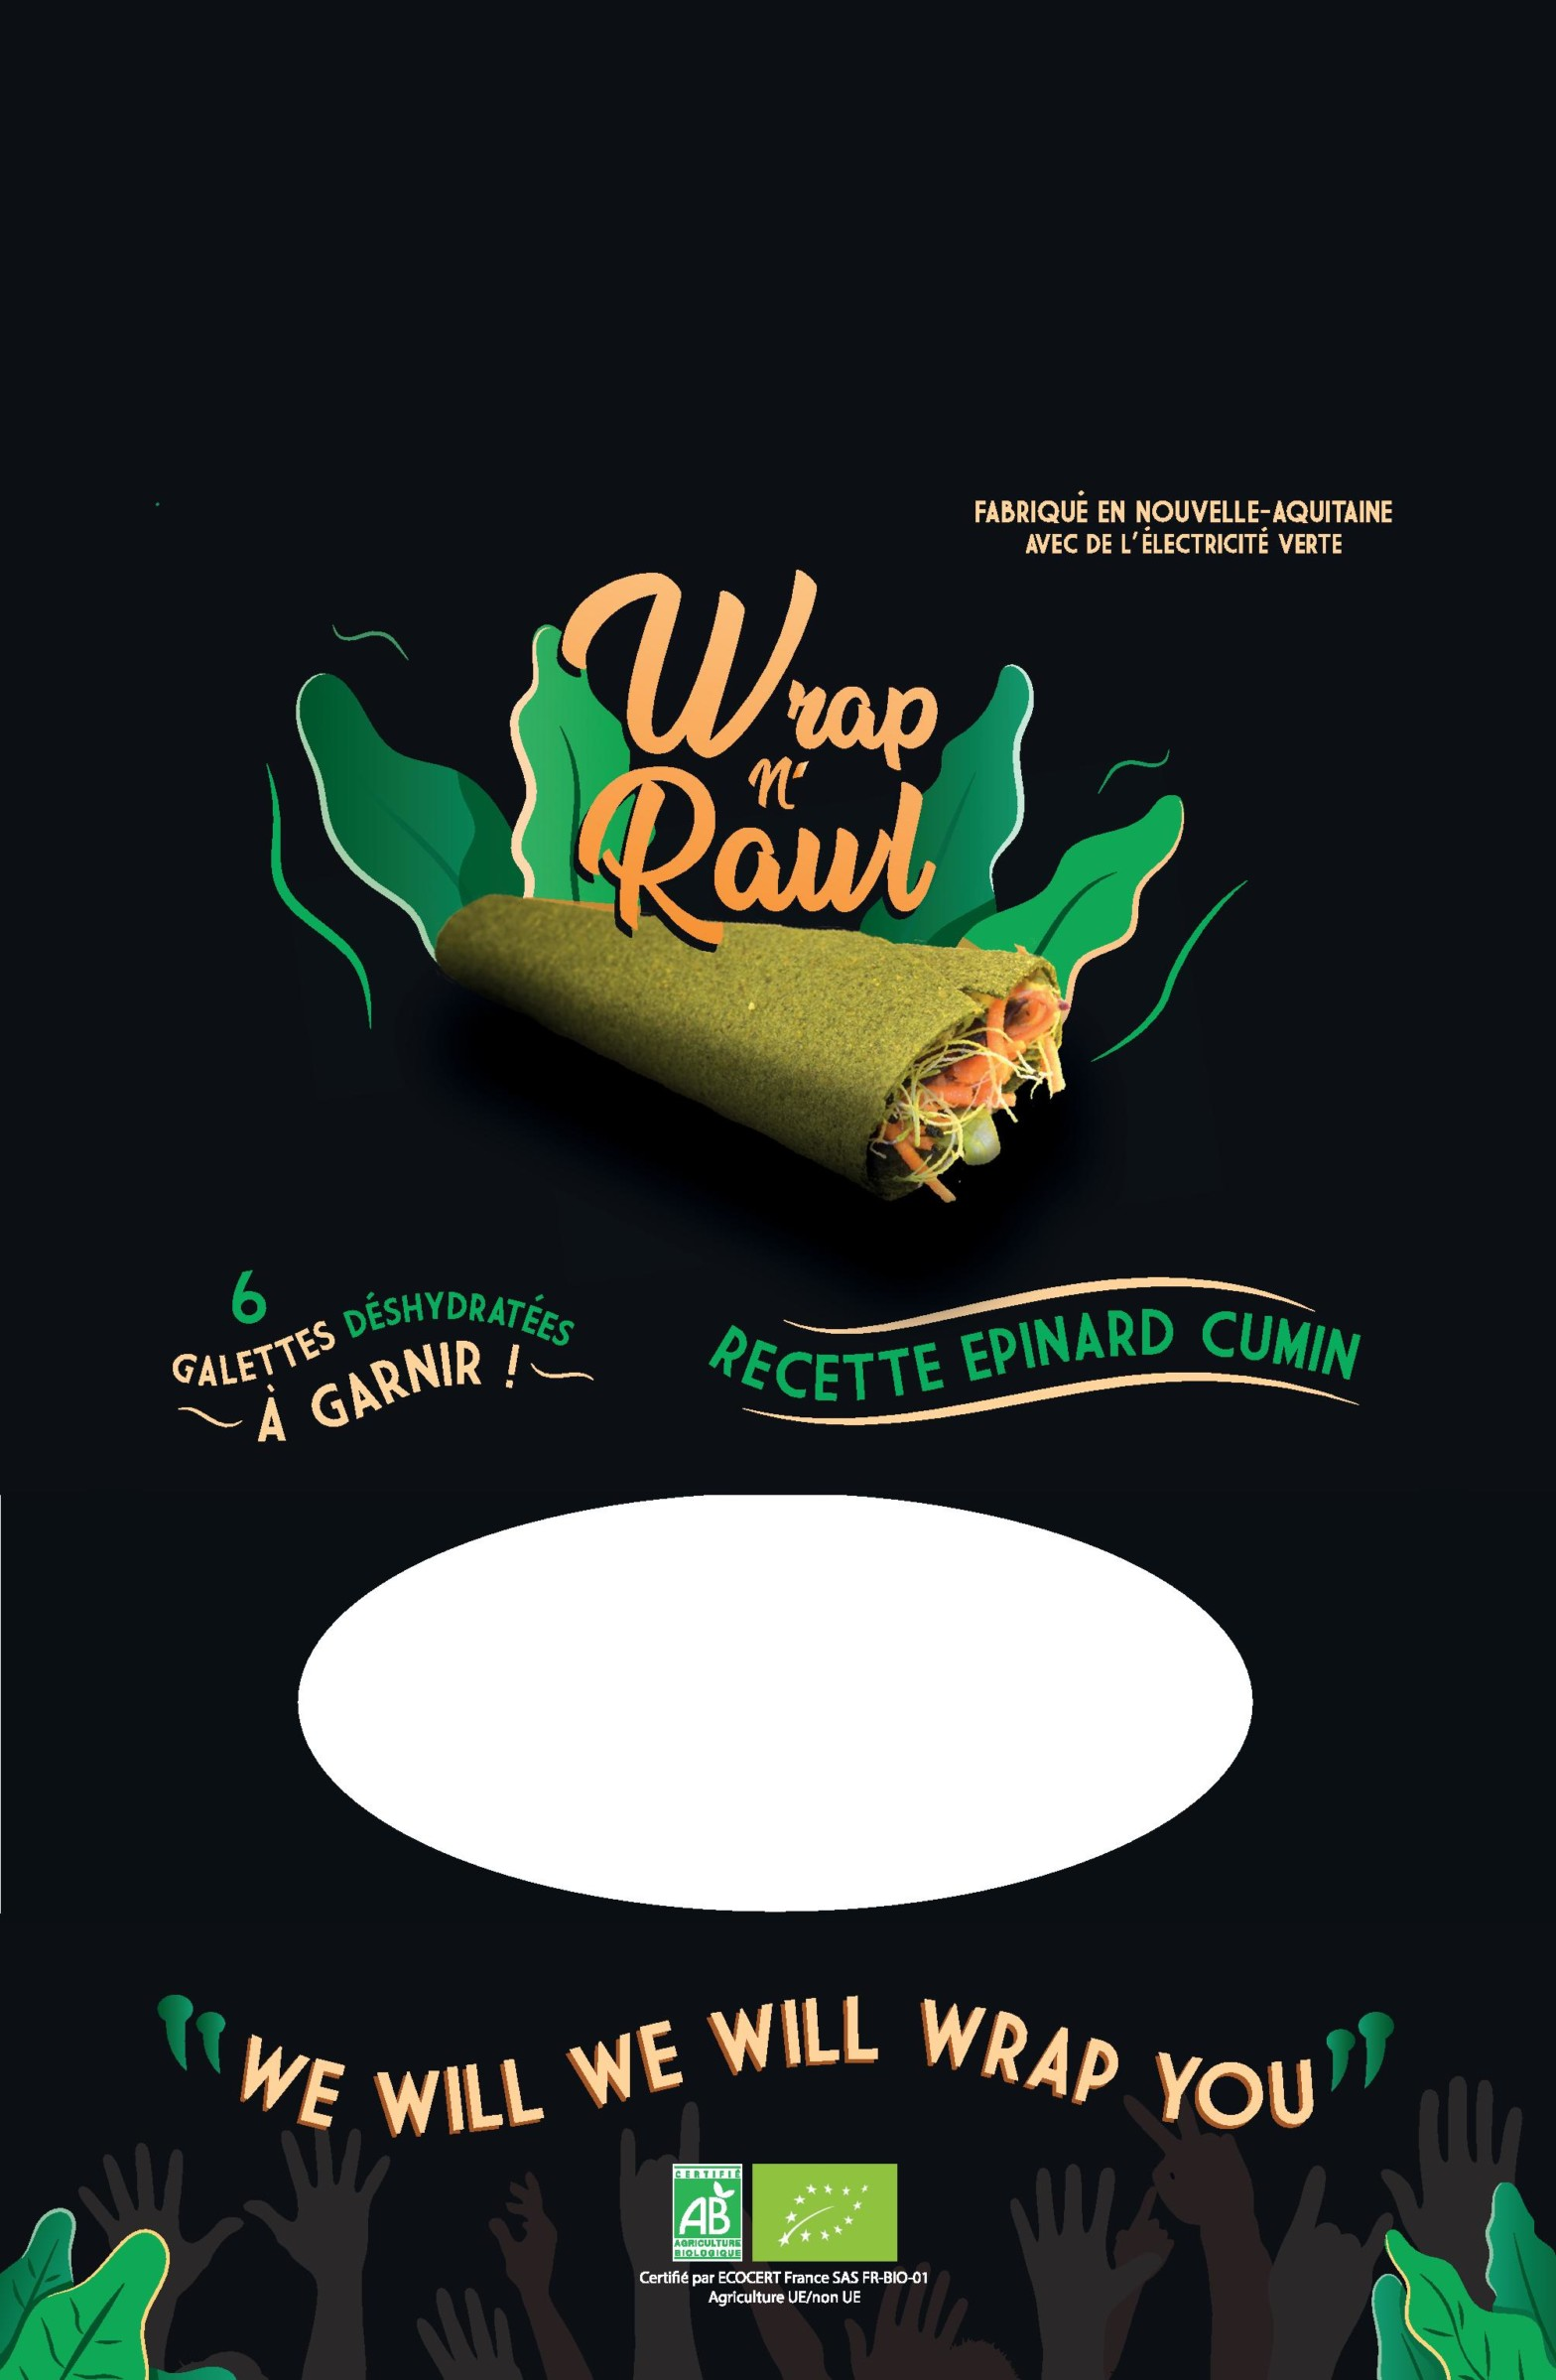 emballage du wrap N'Rawl